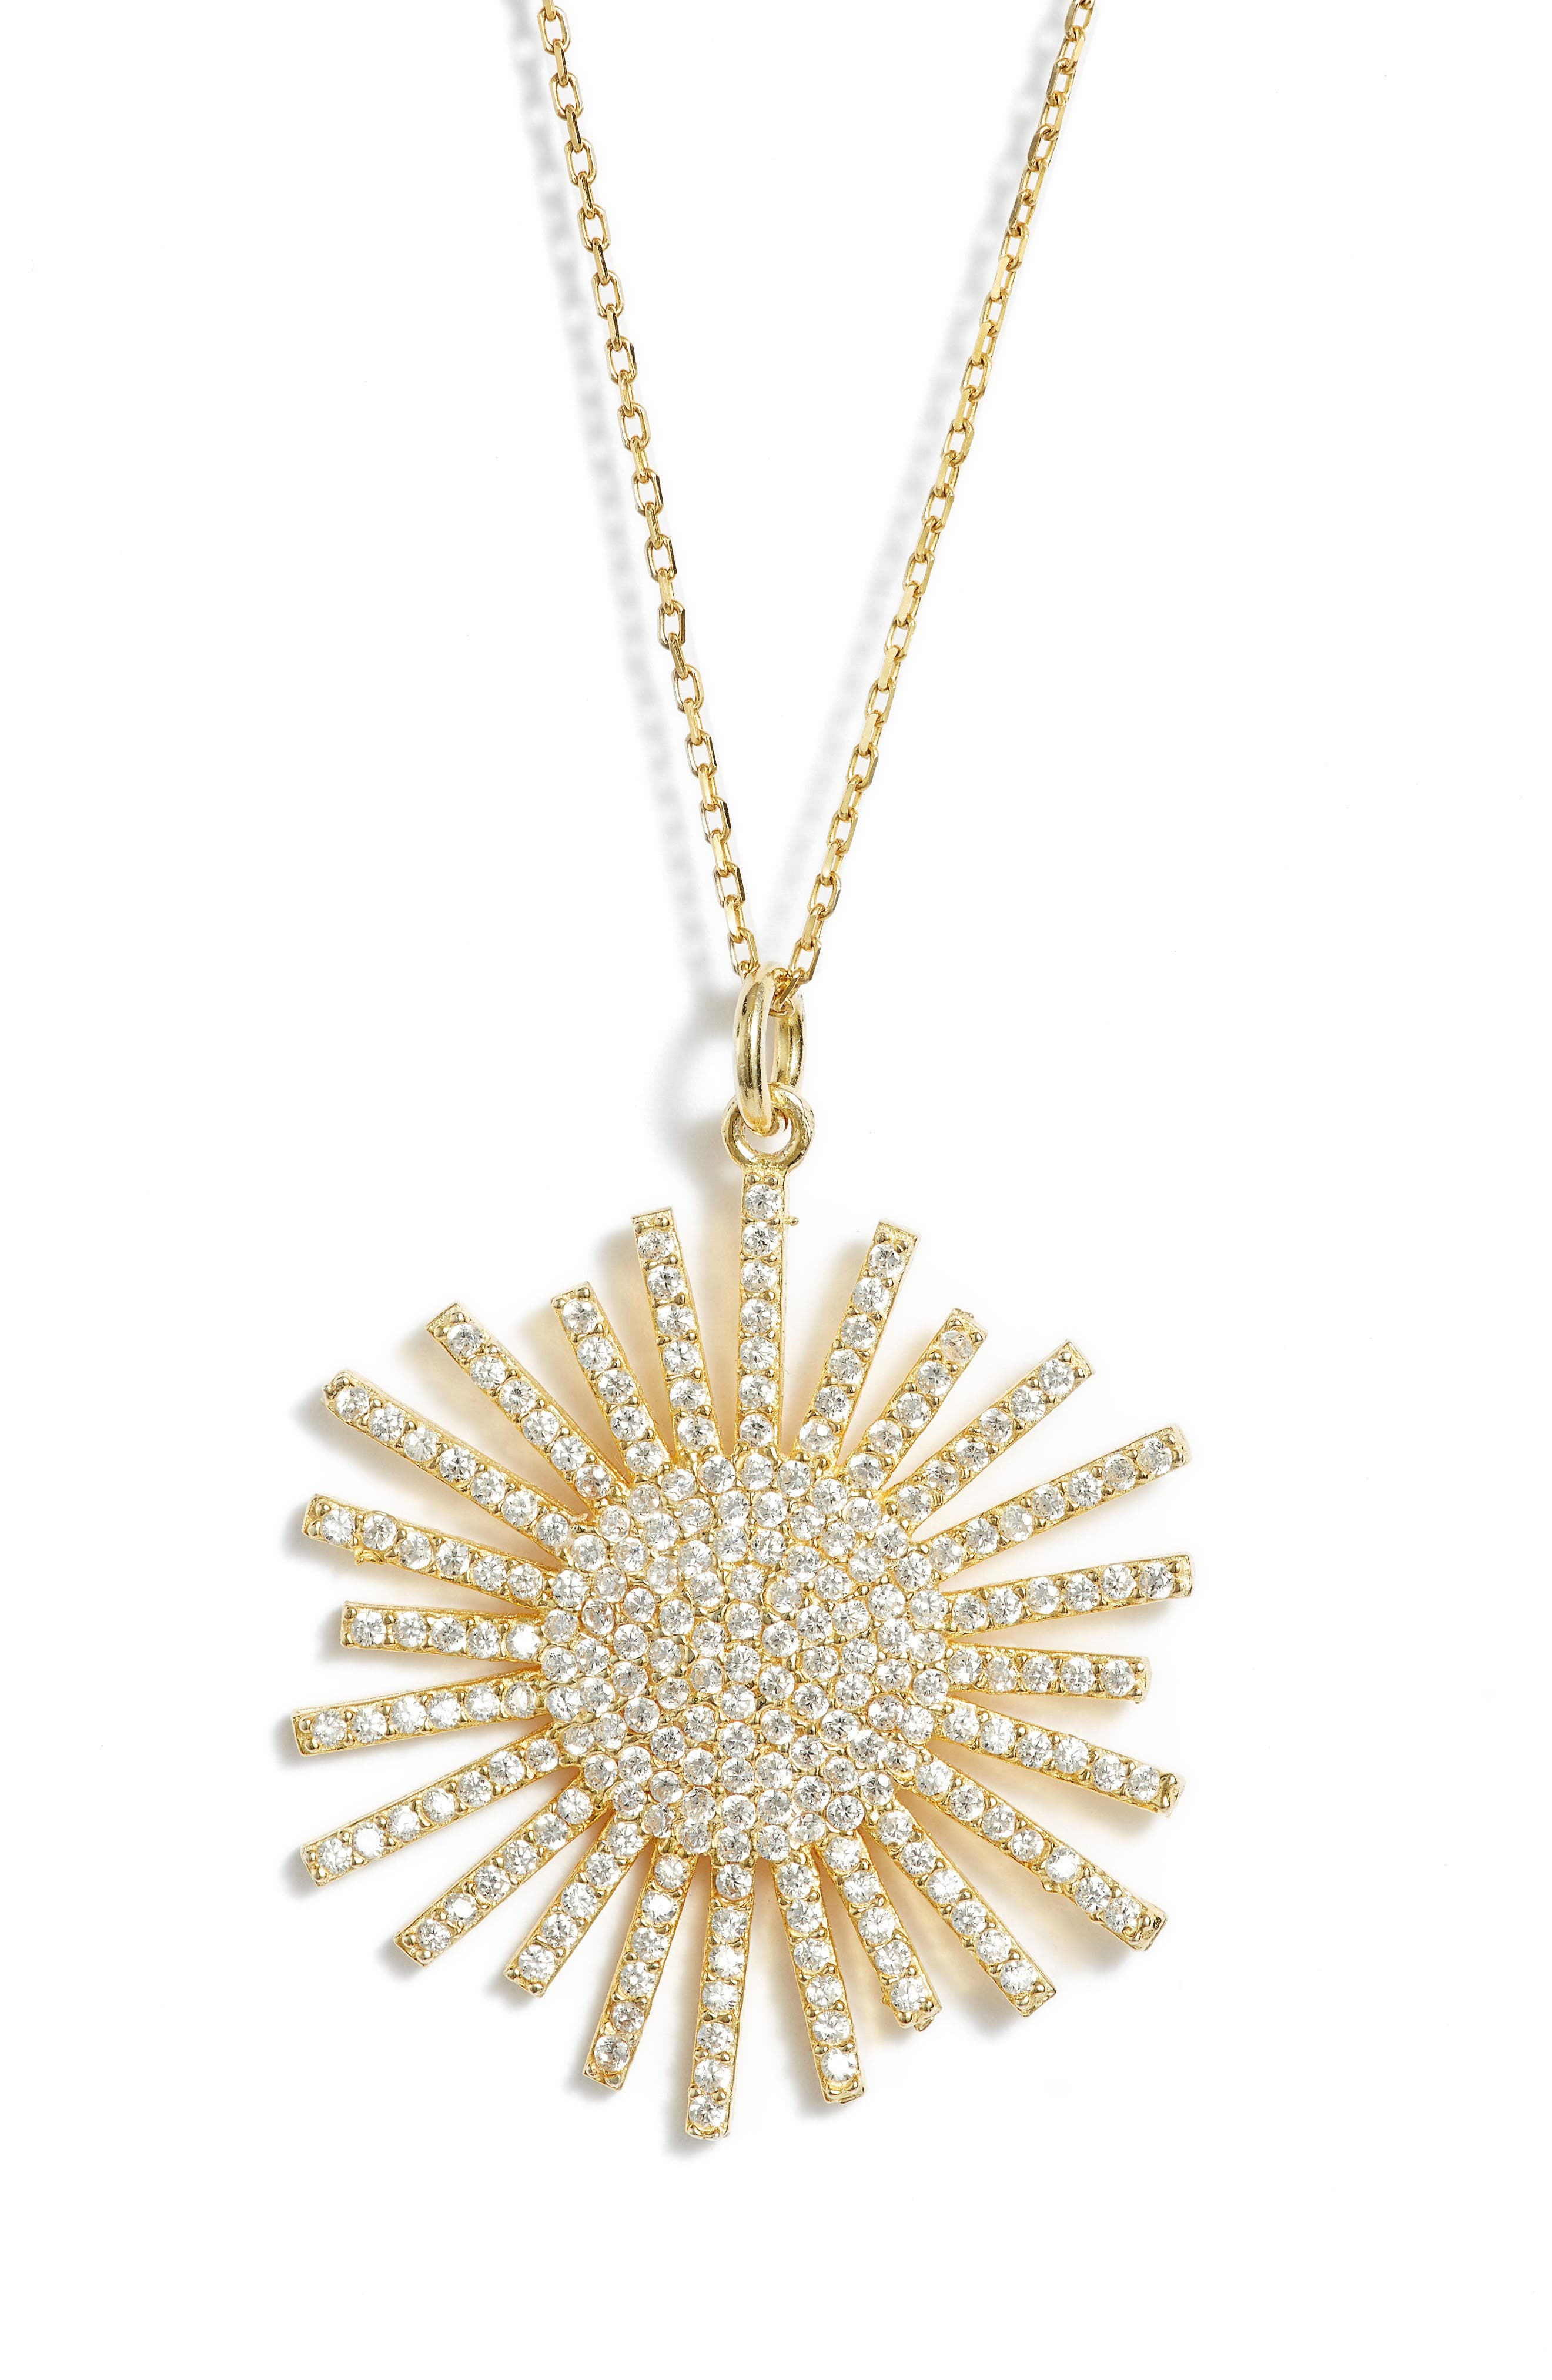 Crystal Starburst Necklace,                             Main thumbnail 1, color,                             710